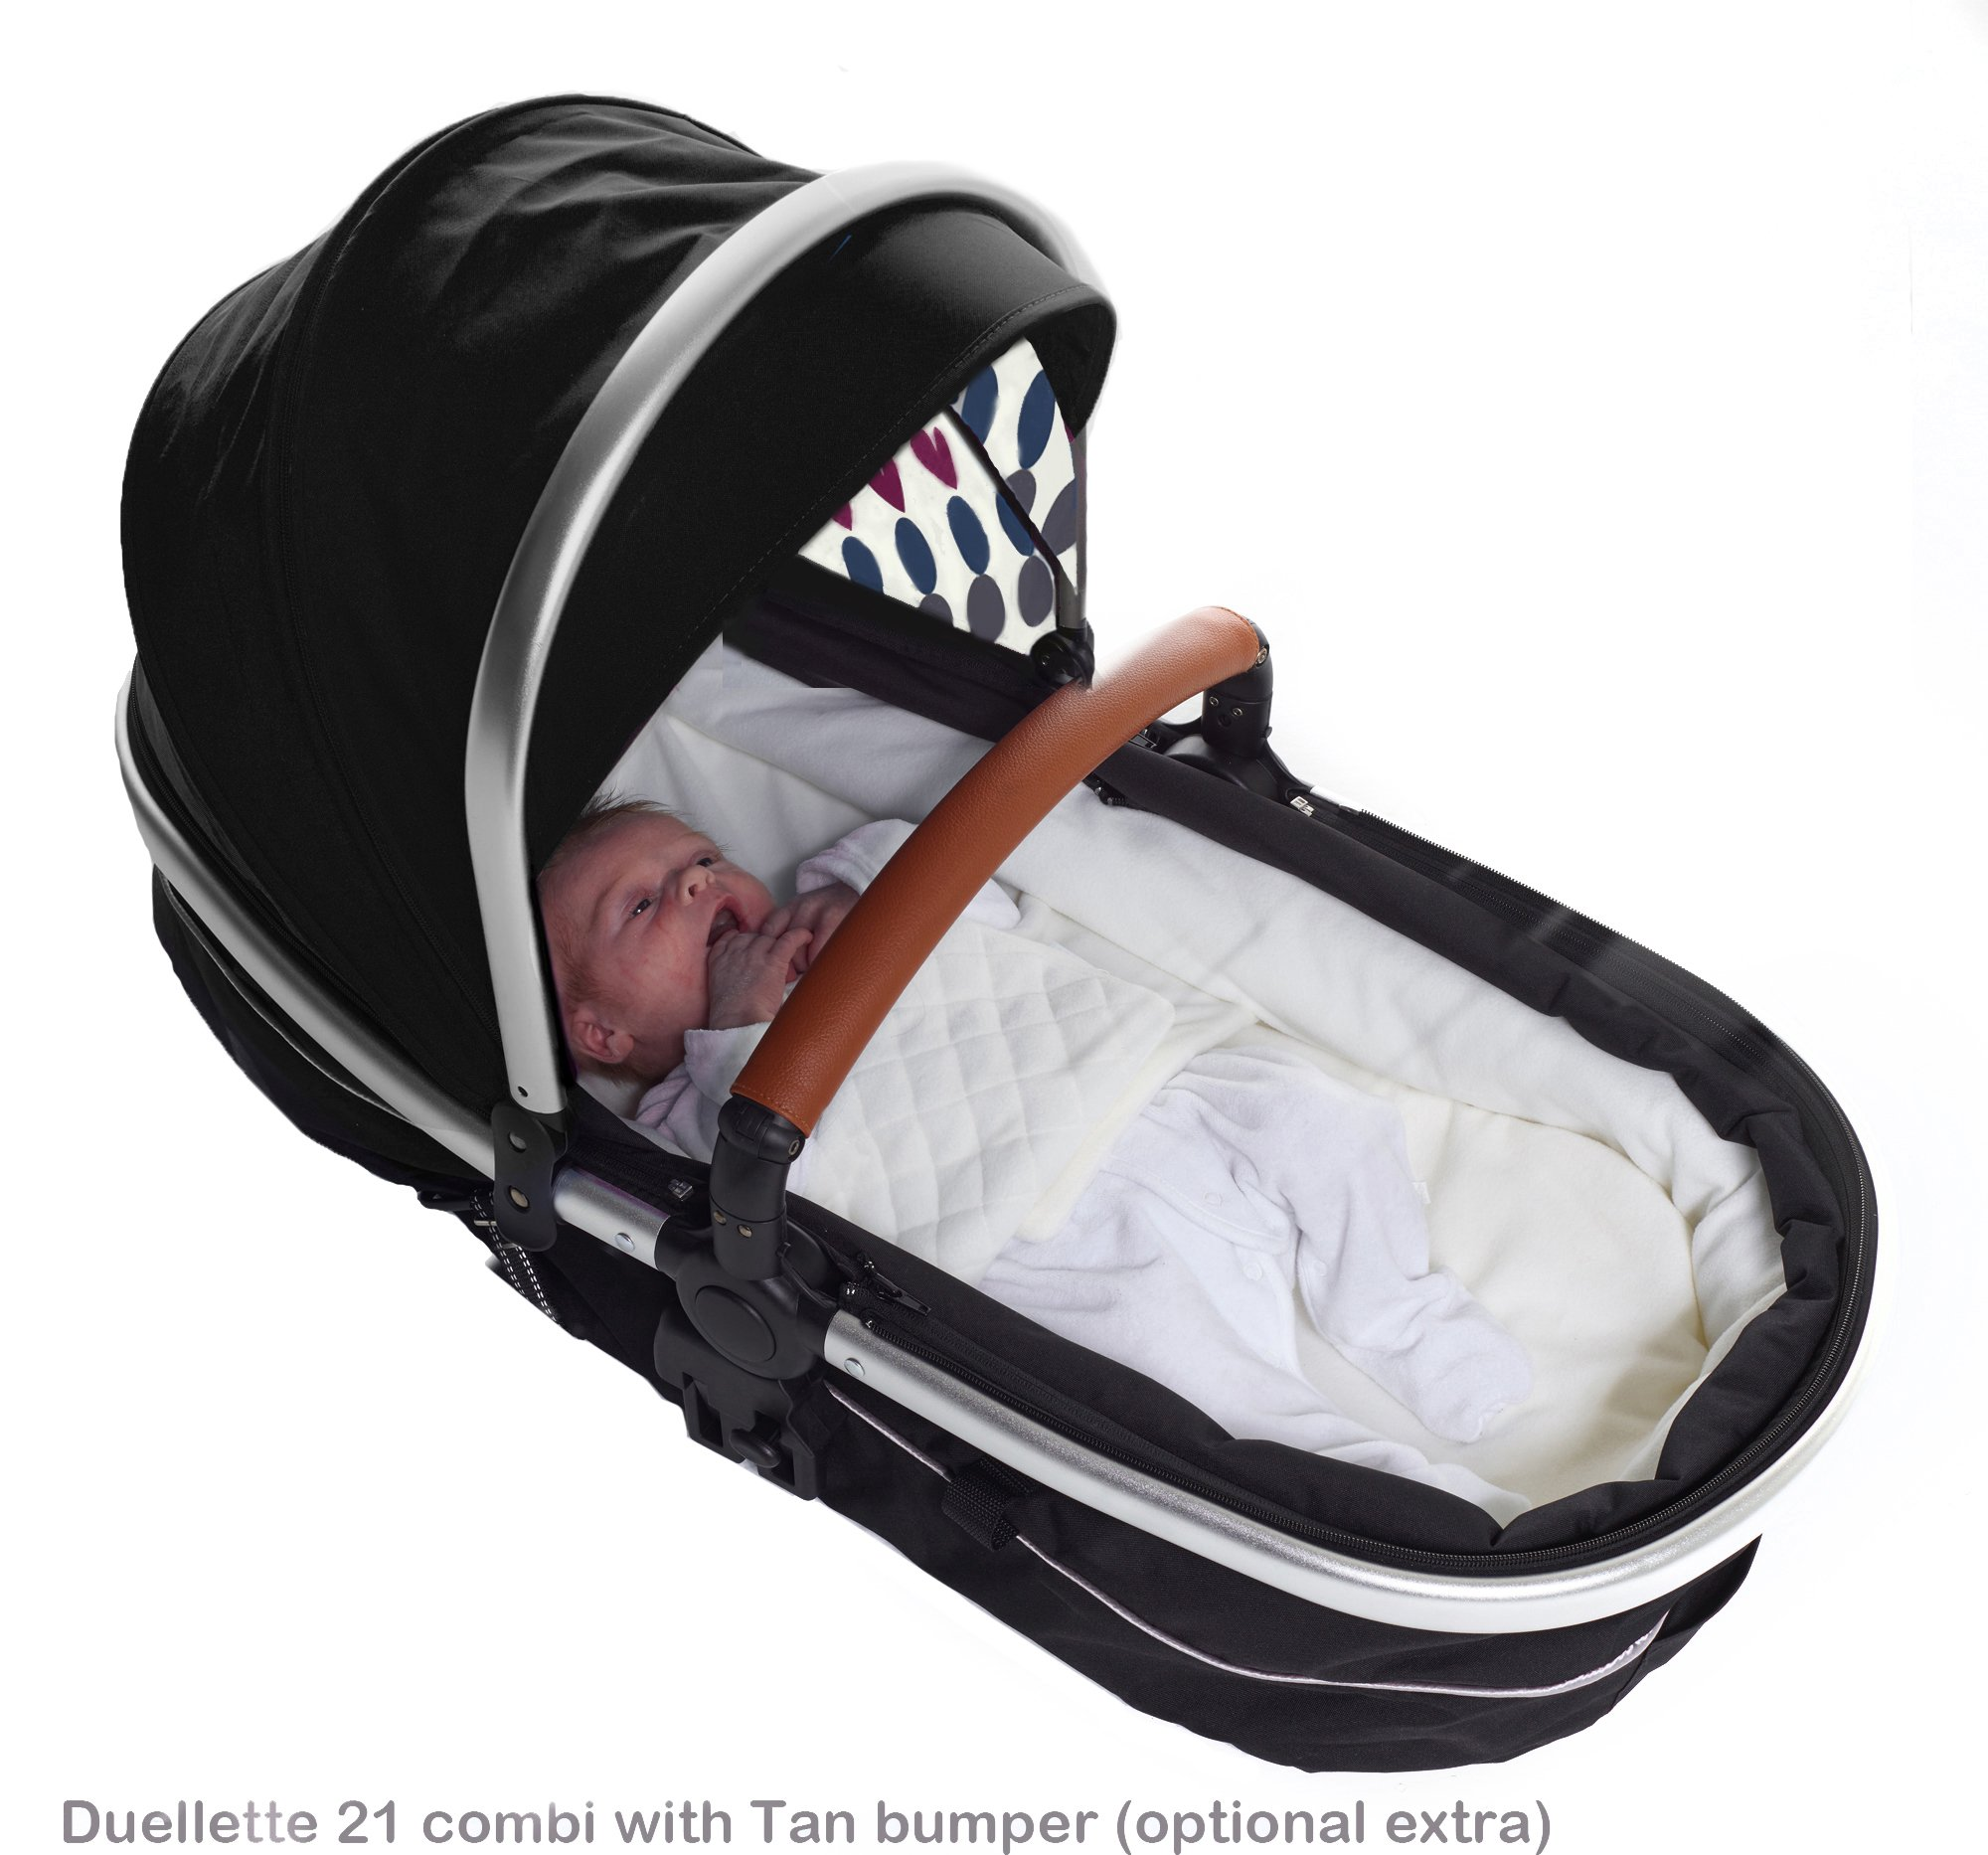 Duellette 21 BS combi Double Pushchair Twin Tandem complete carrycot/converts to seat unit. Free rain covers and 2 free Black footmuffs. Midnight Black by Kids Kargo Kids Kargo Demo video please see link https://www.youtube.com/watch?v=5L8eKWGqoso Various seat positions. Accommodates 1 or 2 car seats Carrycot converts to seat unit incl mattress. Toddler seat from 6 months 6